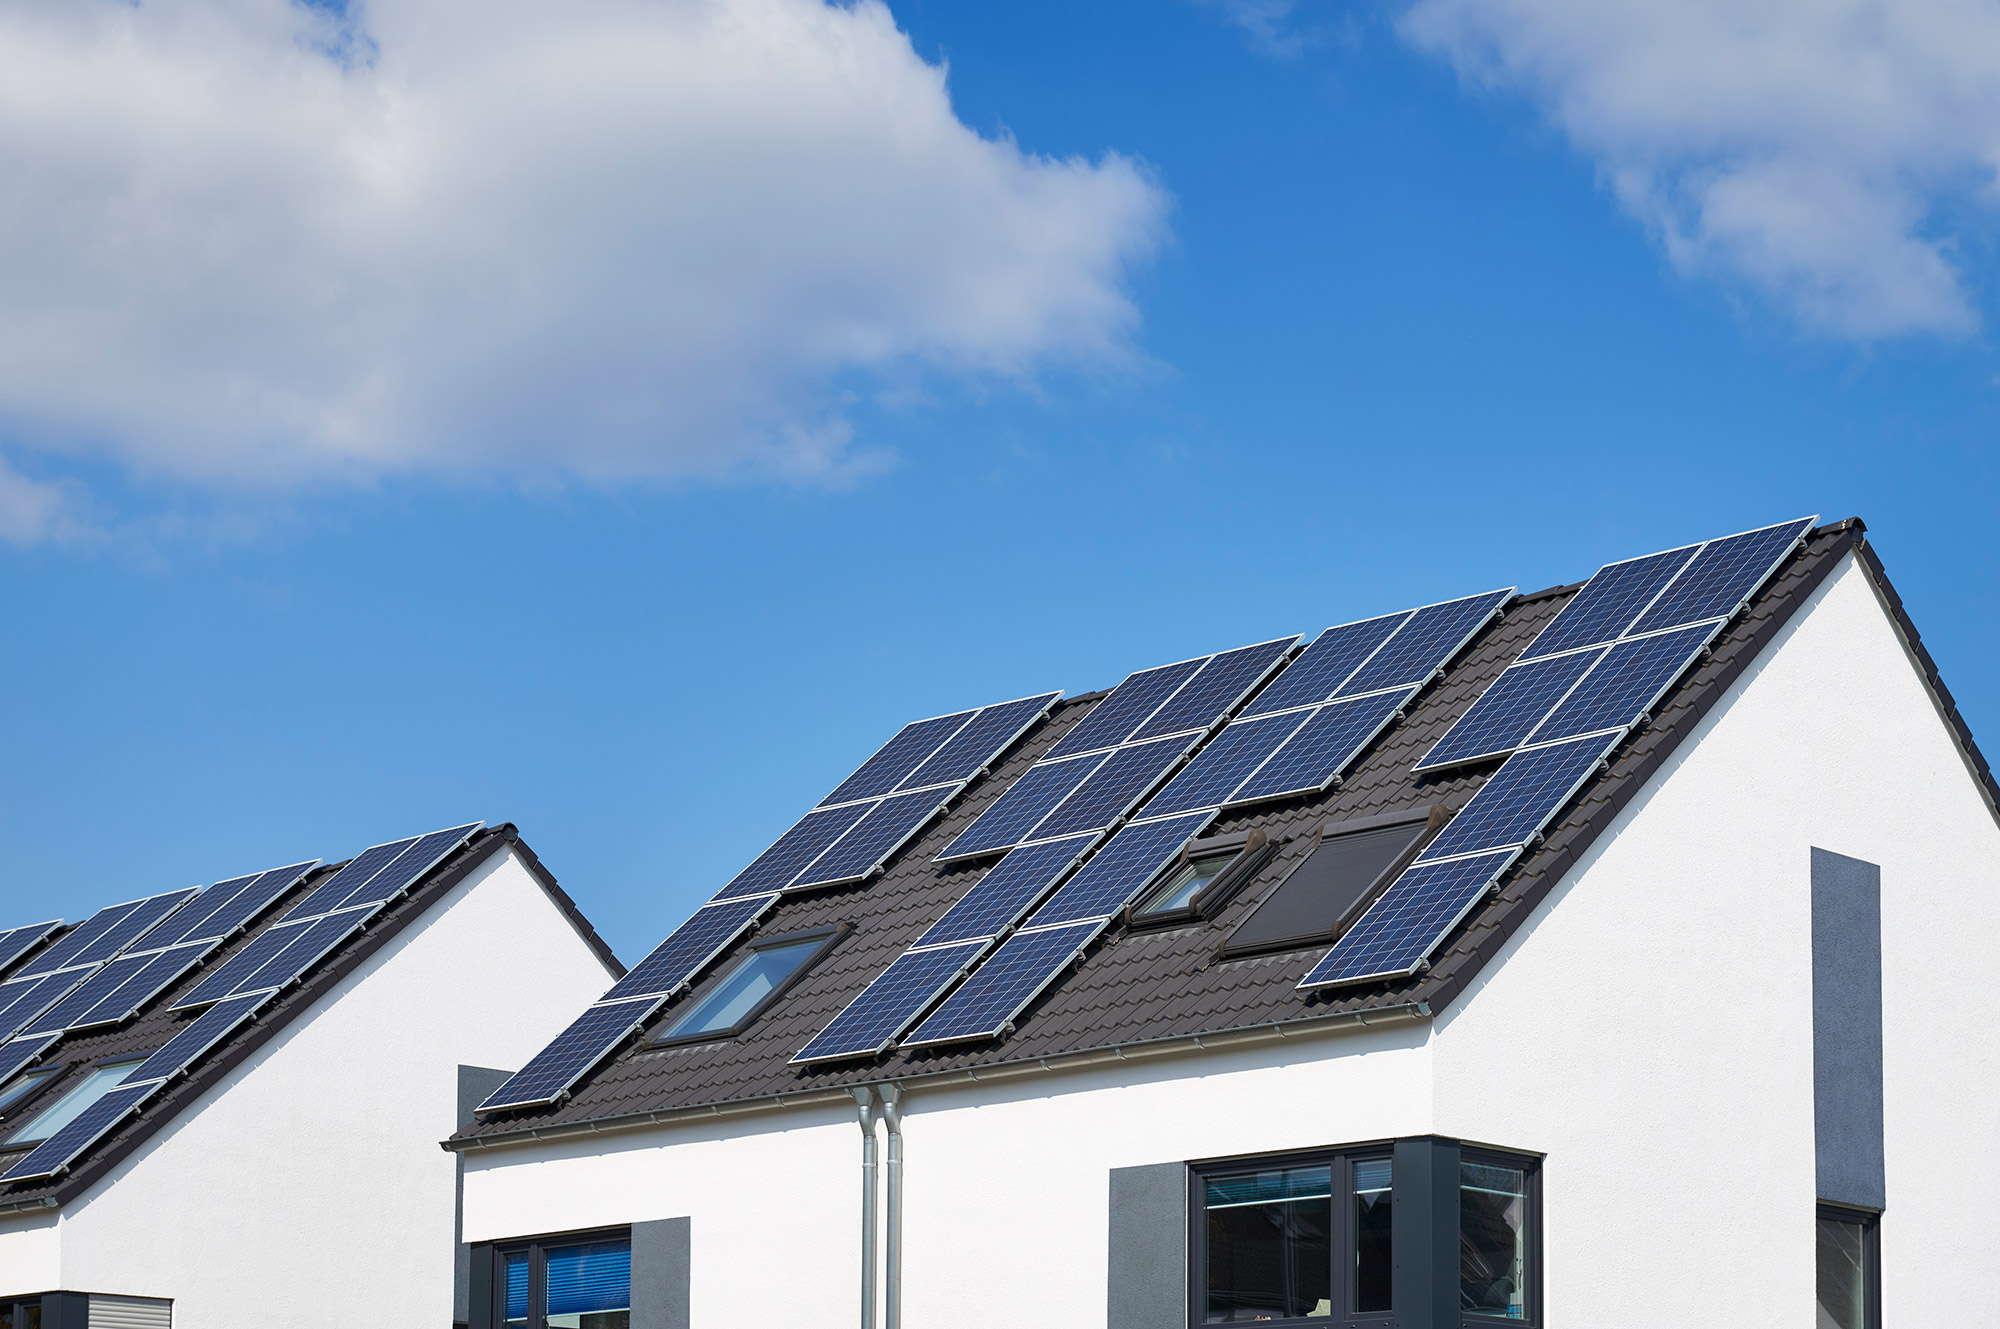 rooftops covered in solar panels under a blue sky